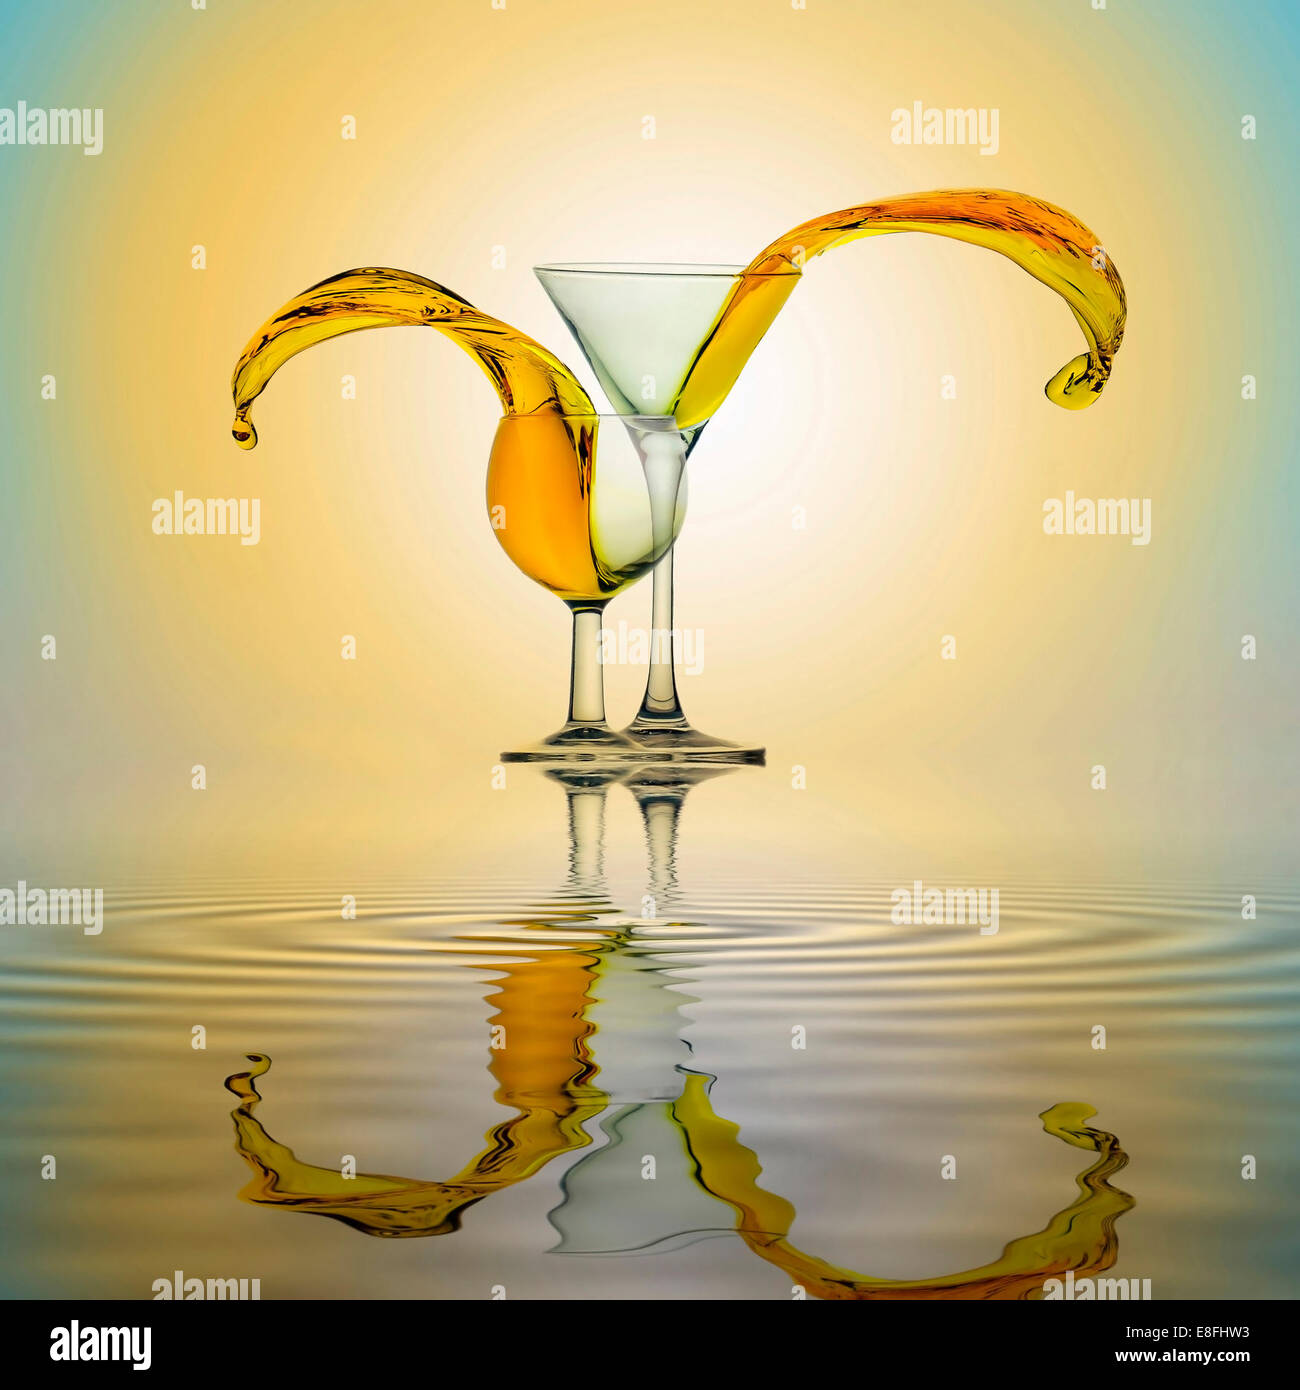 Yellow water splashing from two glasses standing side by side on water surface - Stock Image